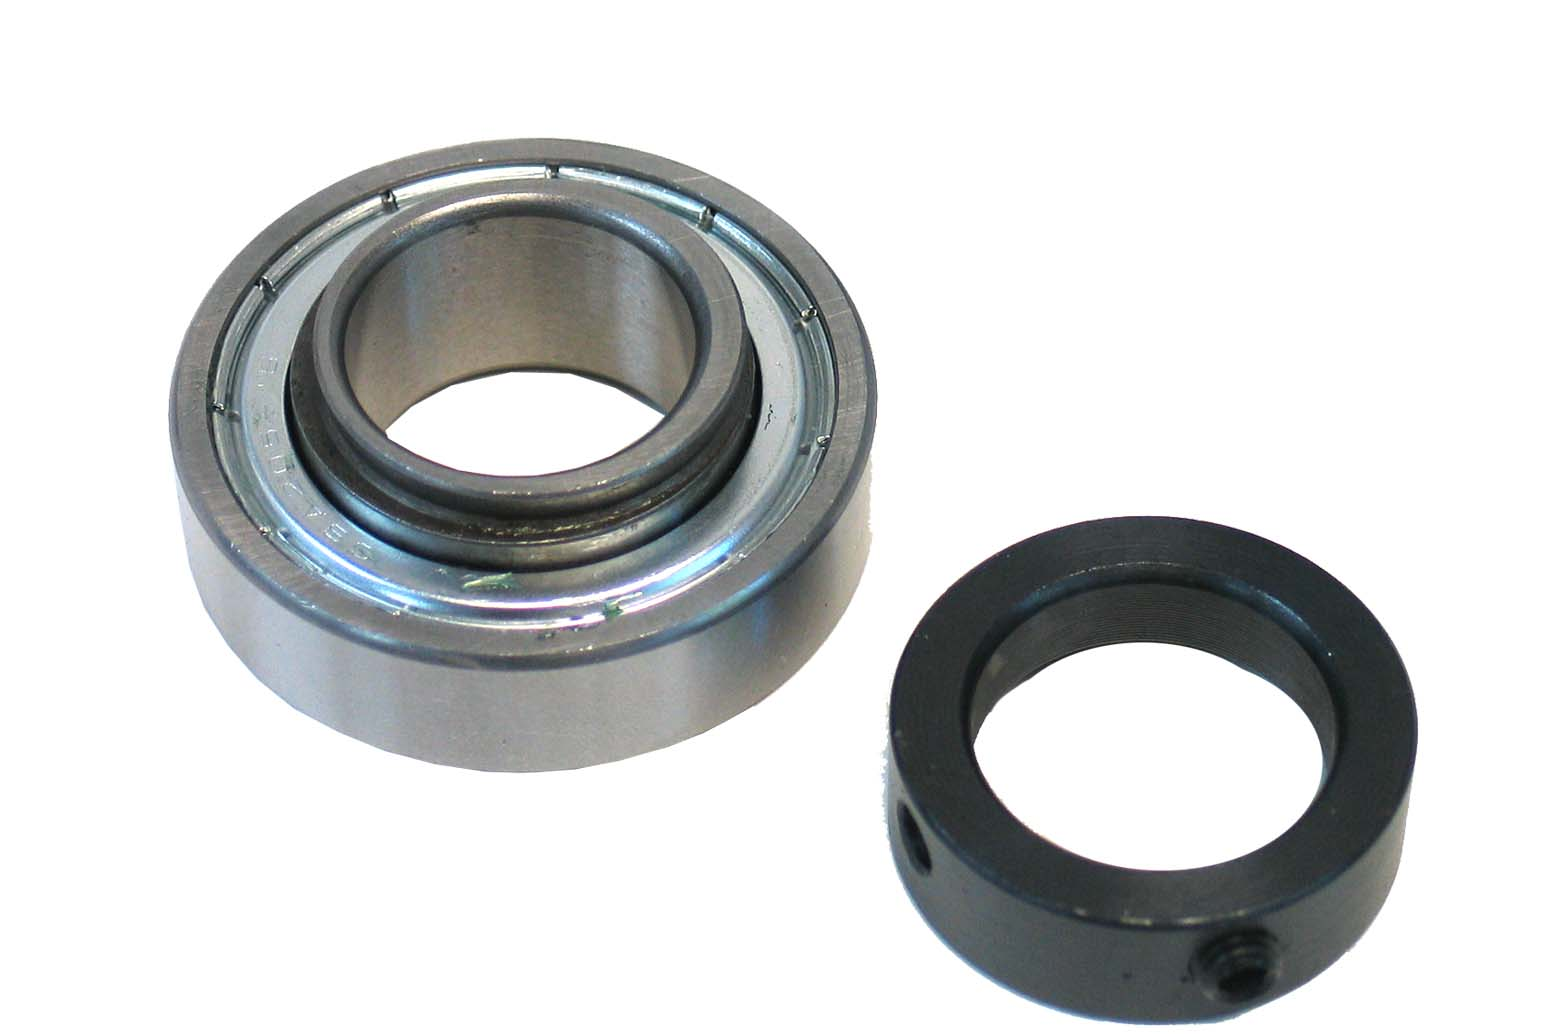 OREGON Bearing For John Deere # jd8597, 8597